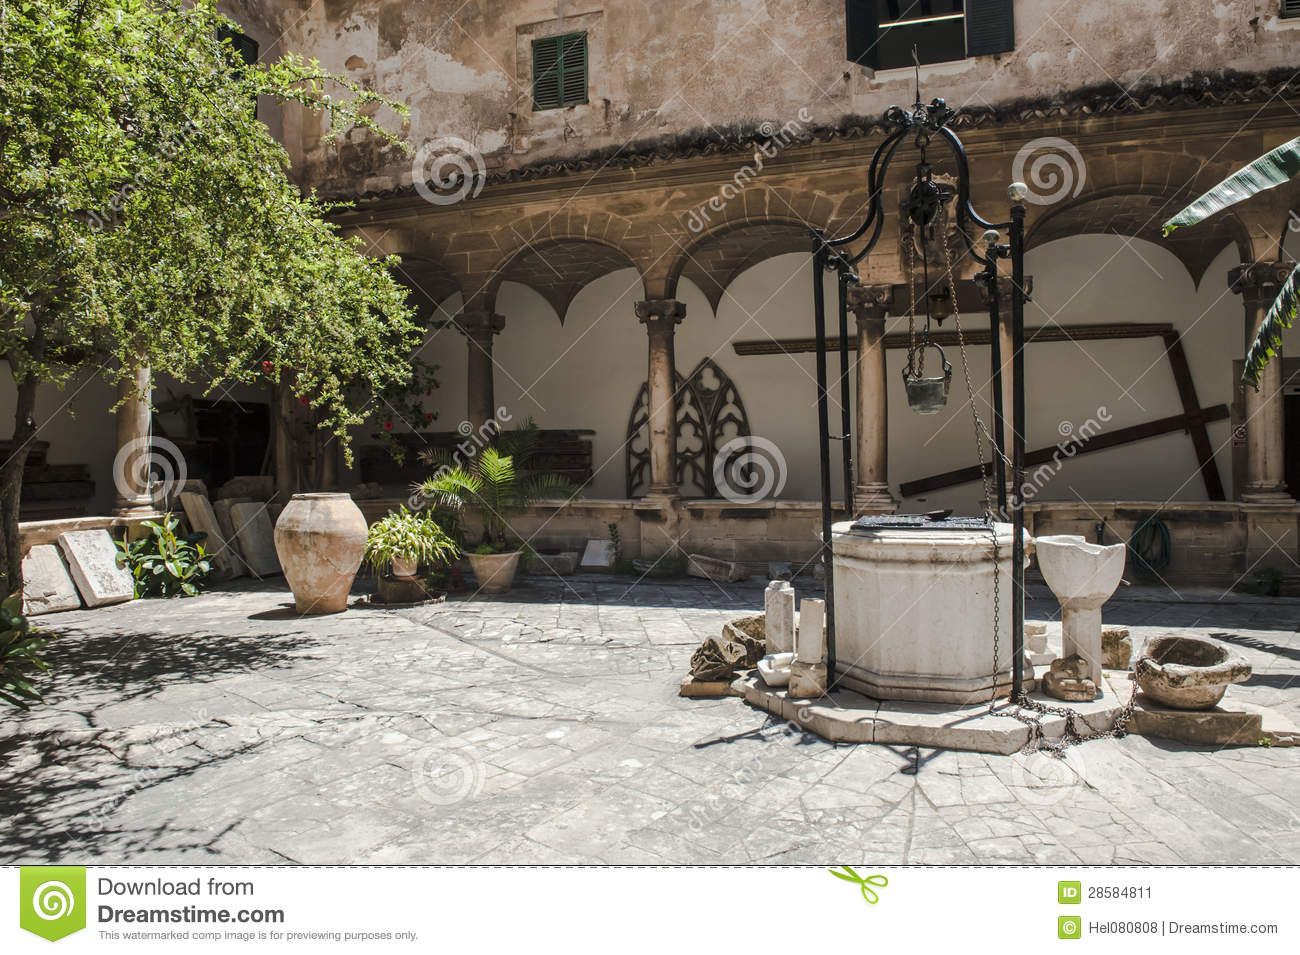 Ancient Water Well Stock Image - Image: 28584811